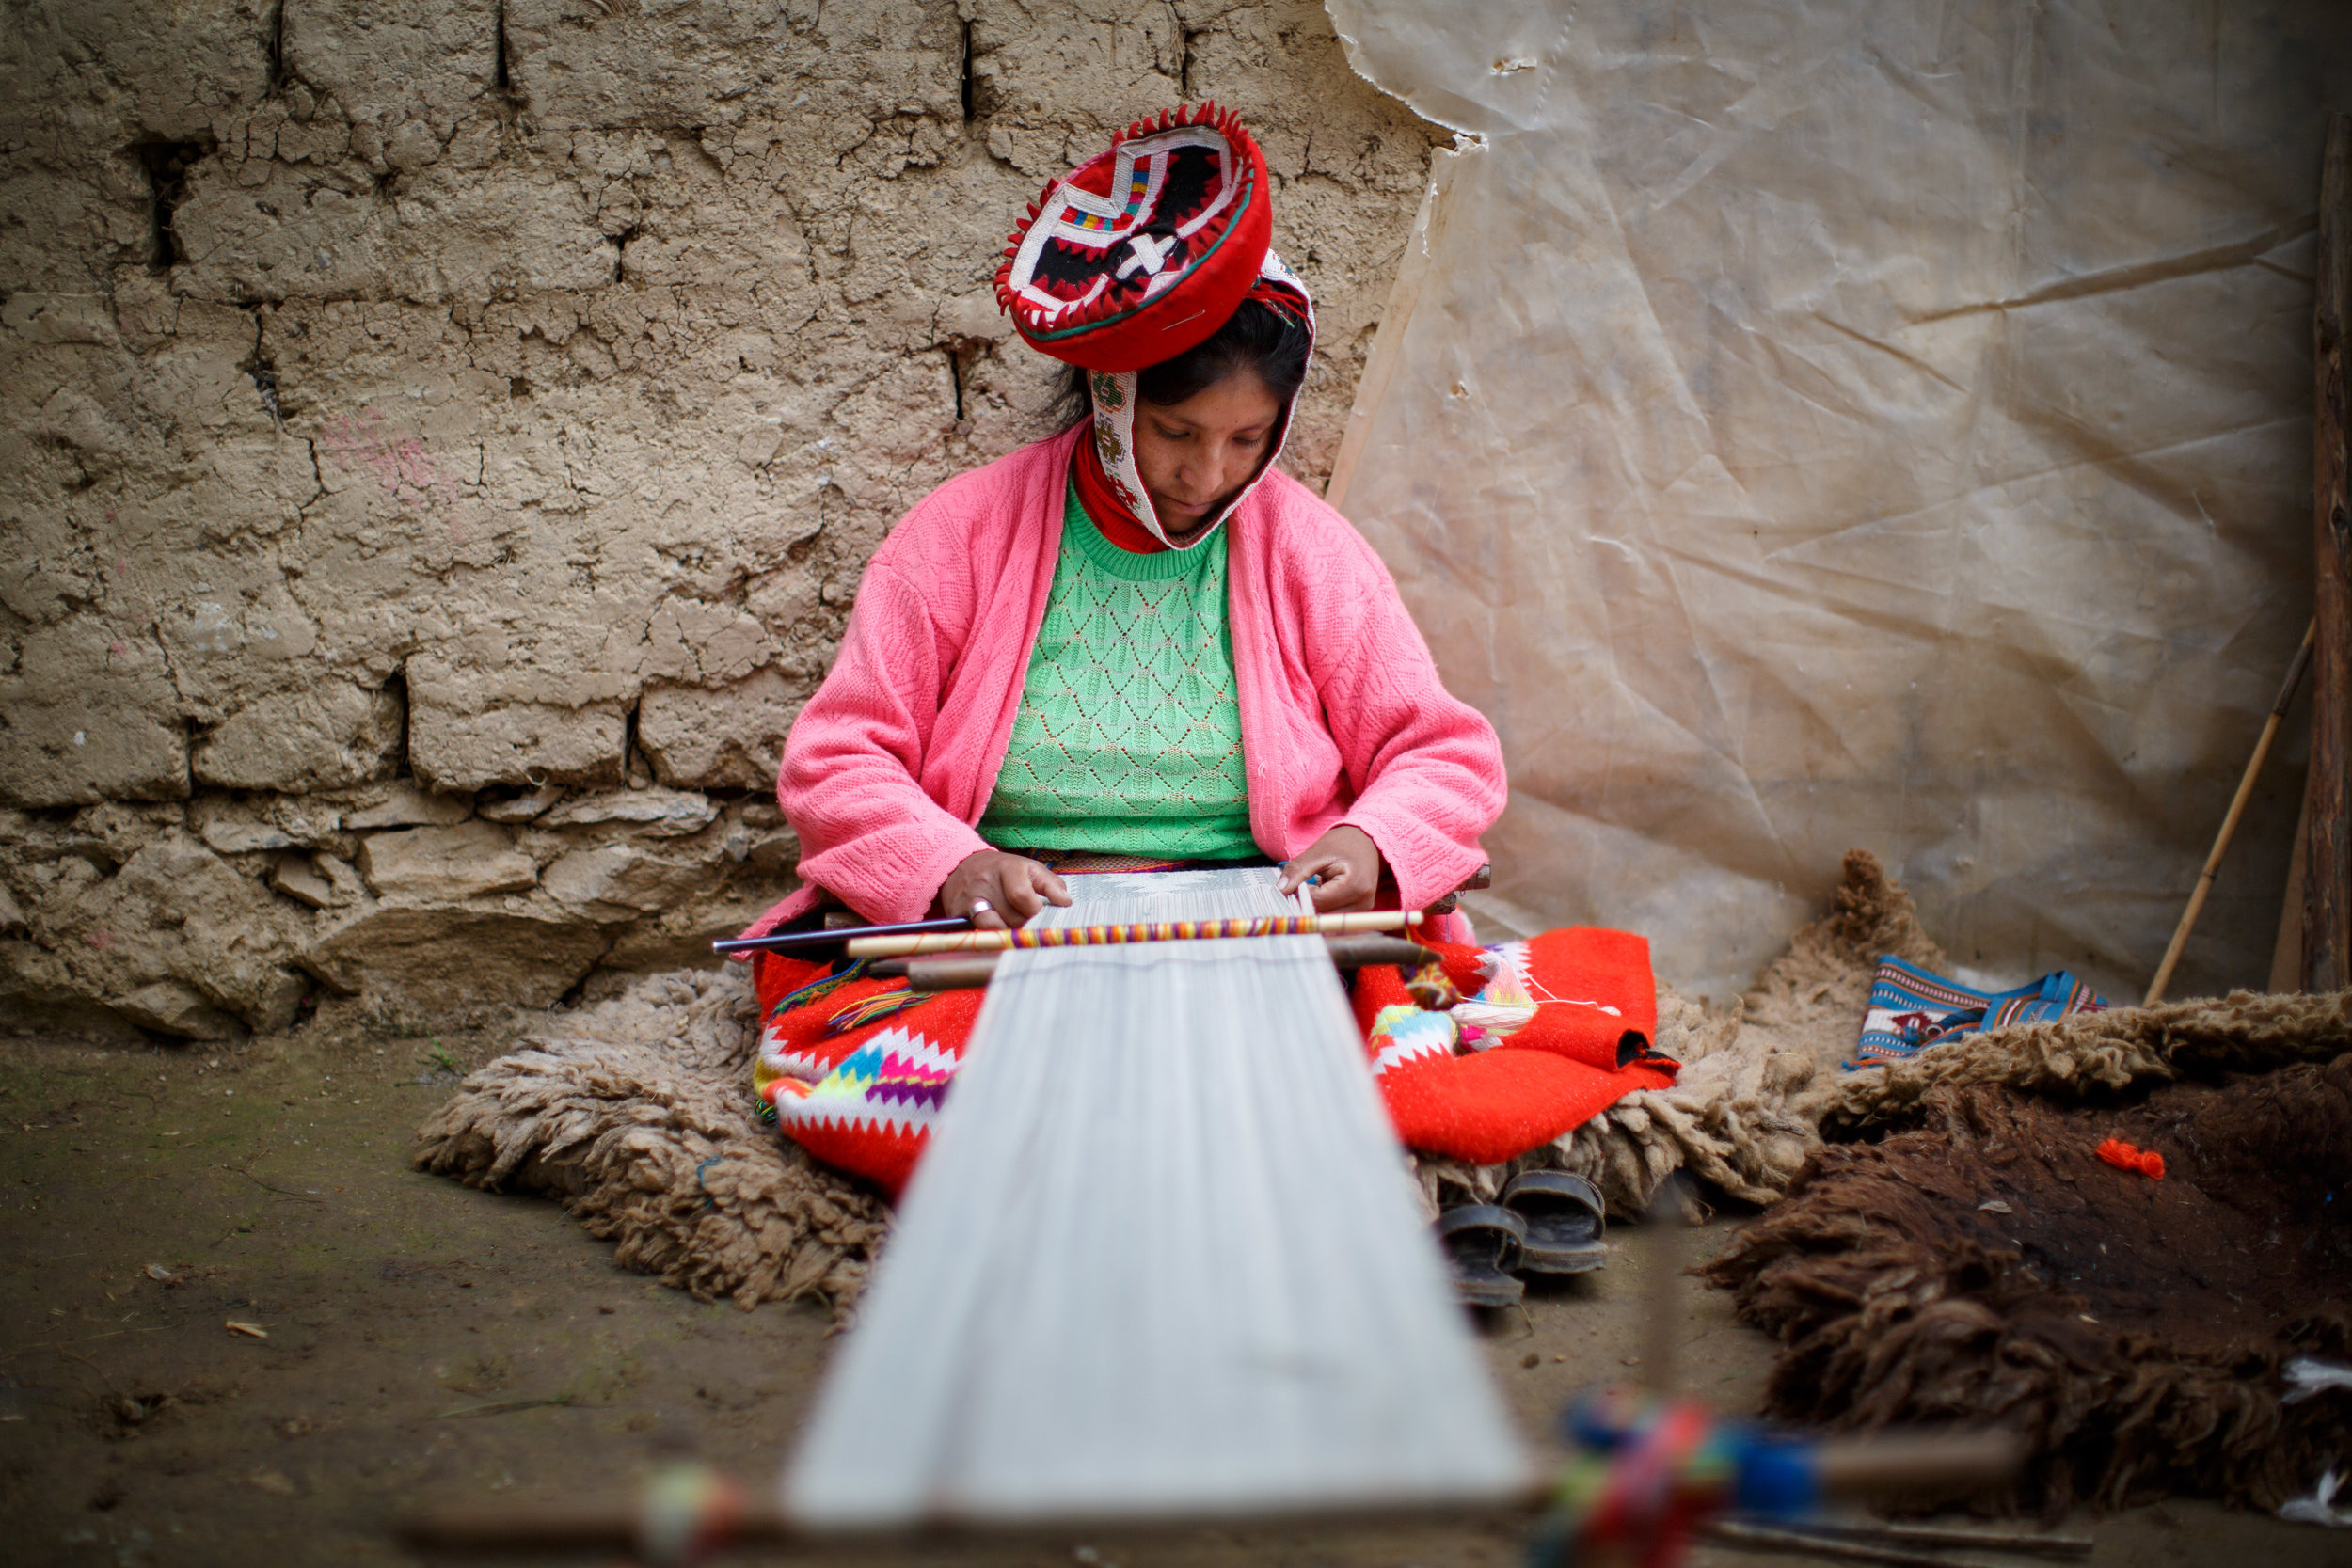 An artisan weaves threads into cloth on the backstrap loom.